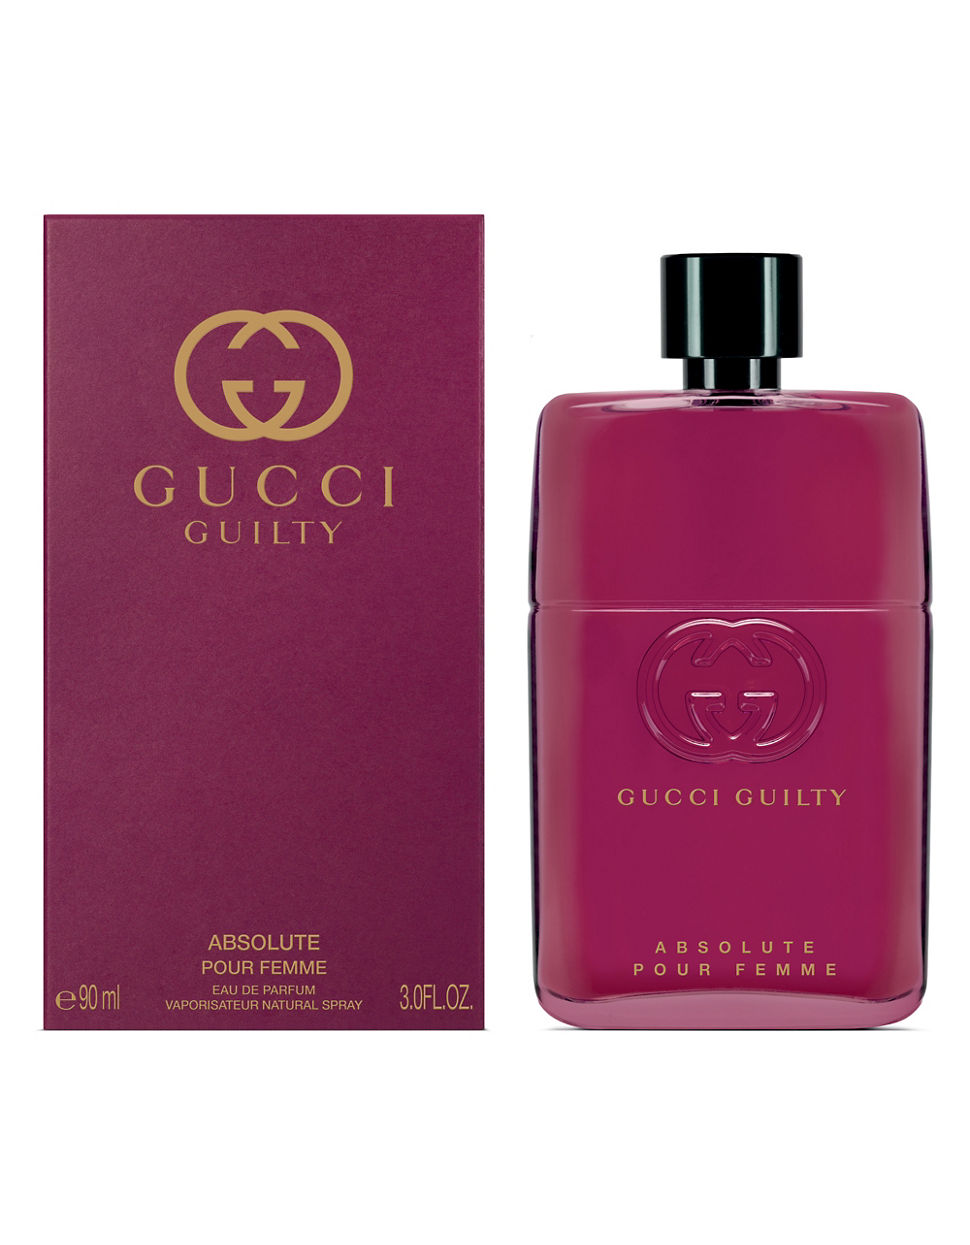 Gucci Womens Perfume Fragrance Beauty Hudsons Bay